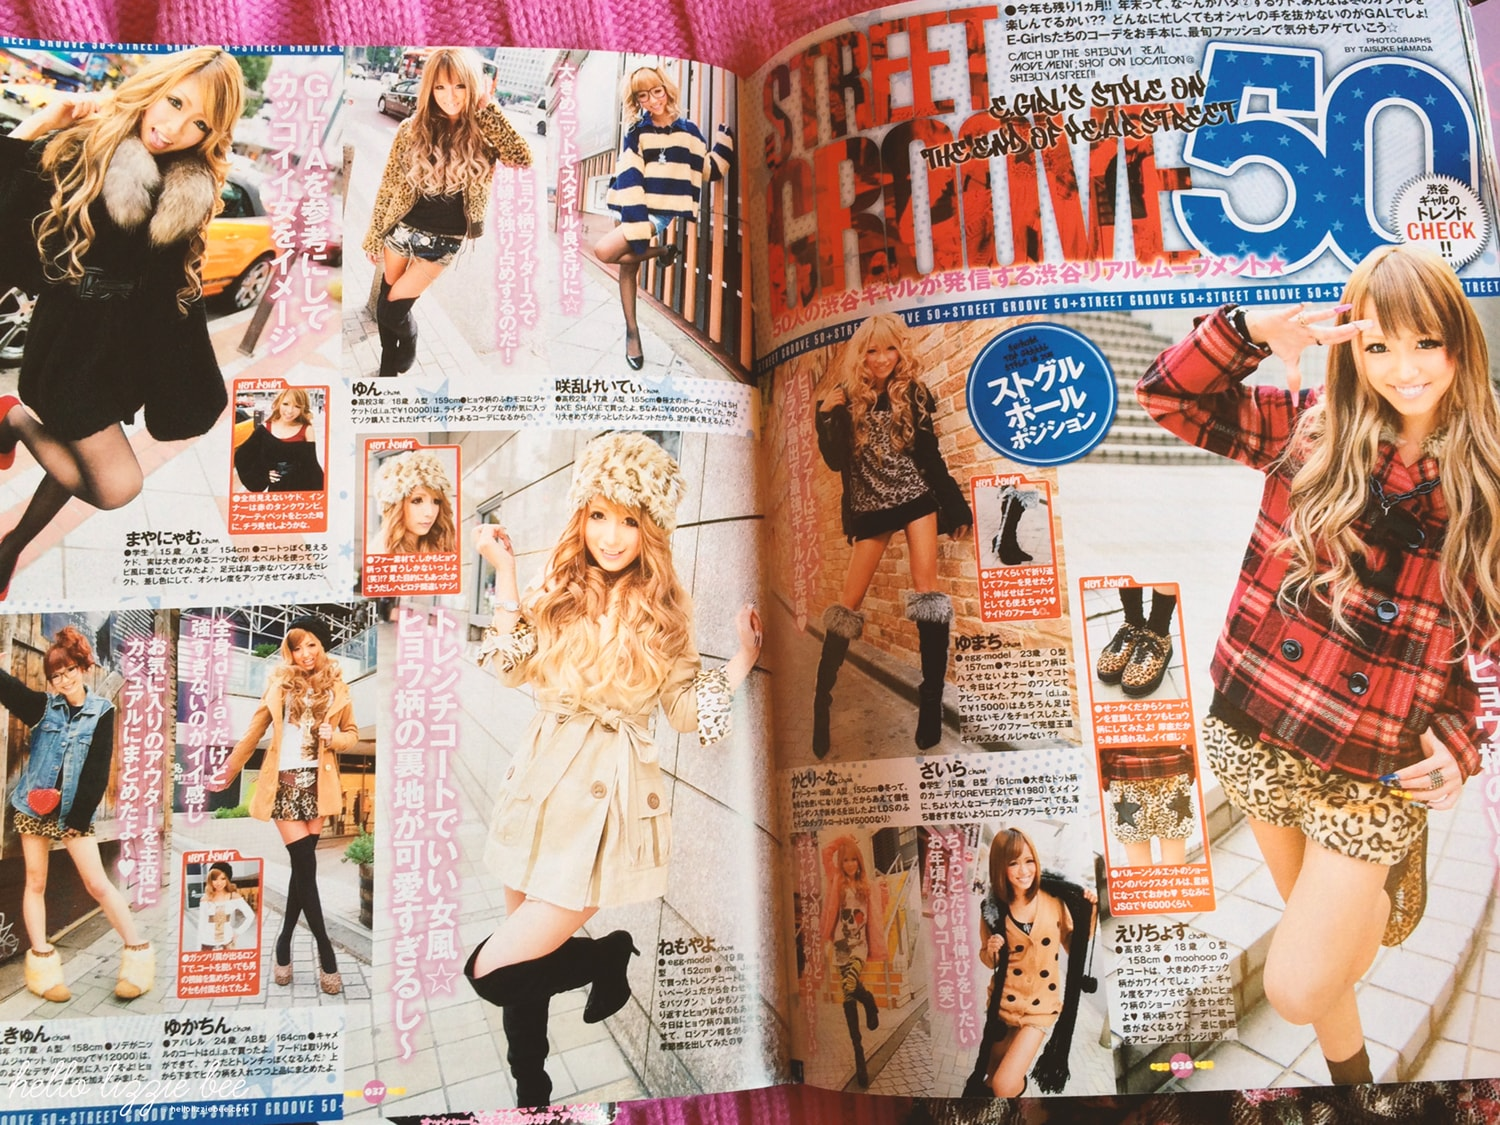 gyaru kei, winter gyaru street fashion